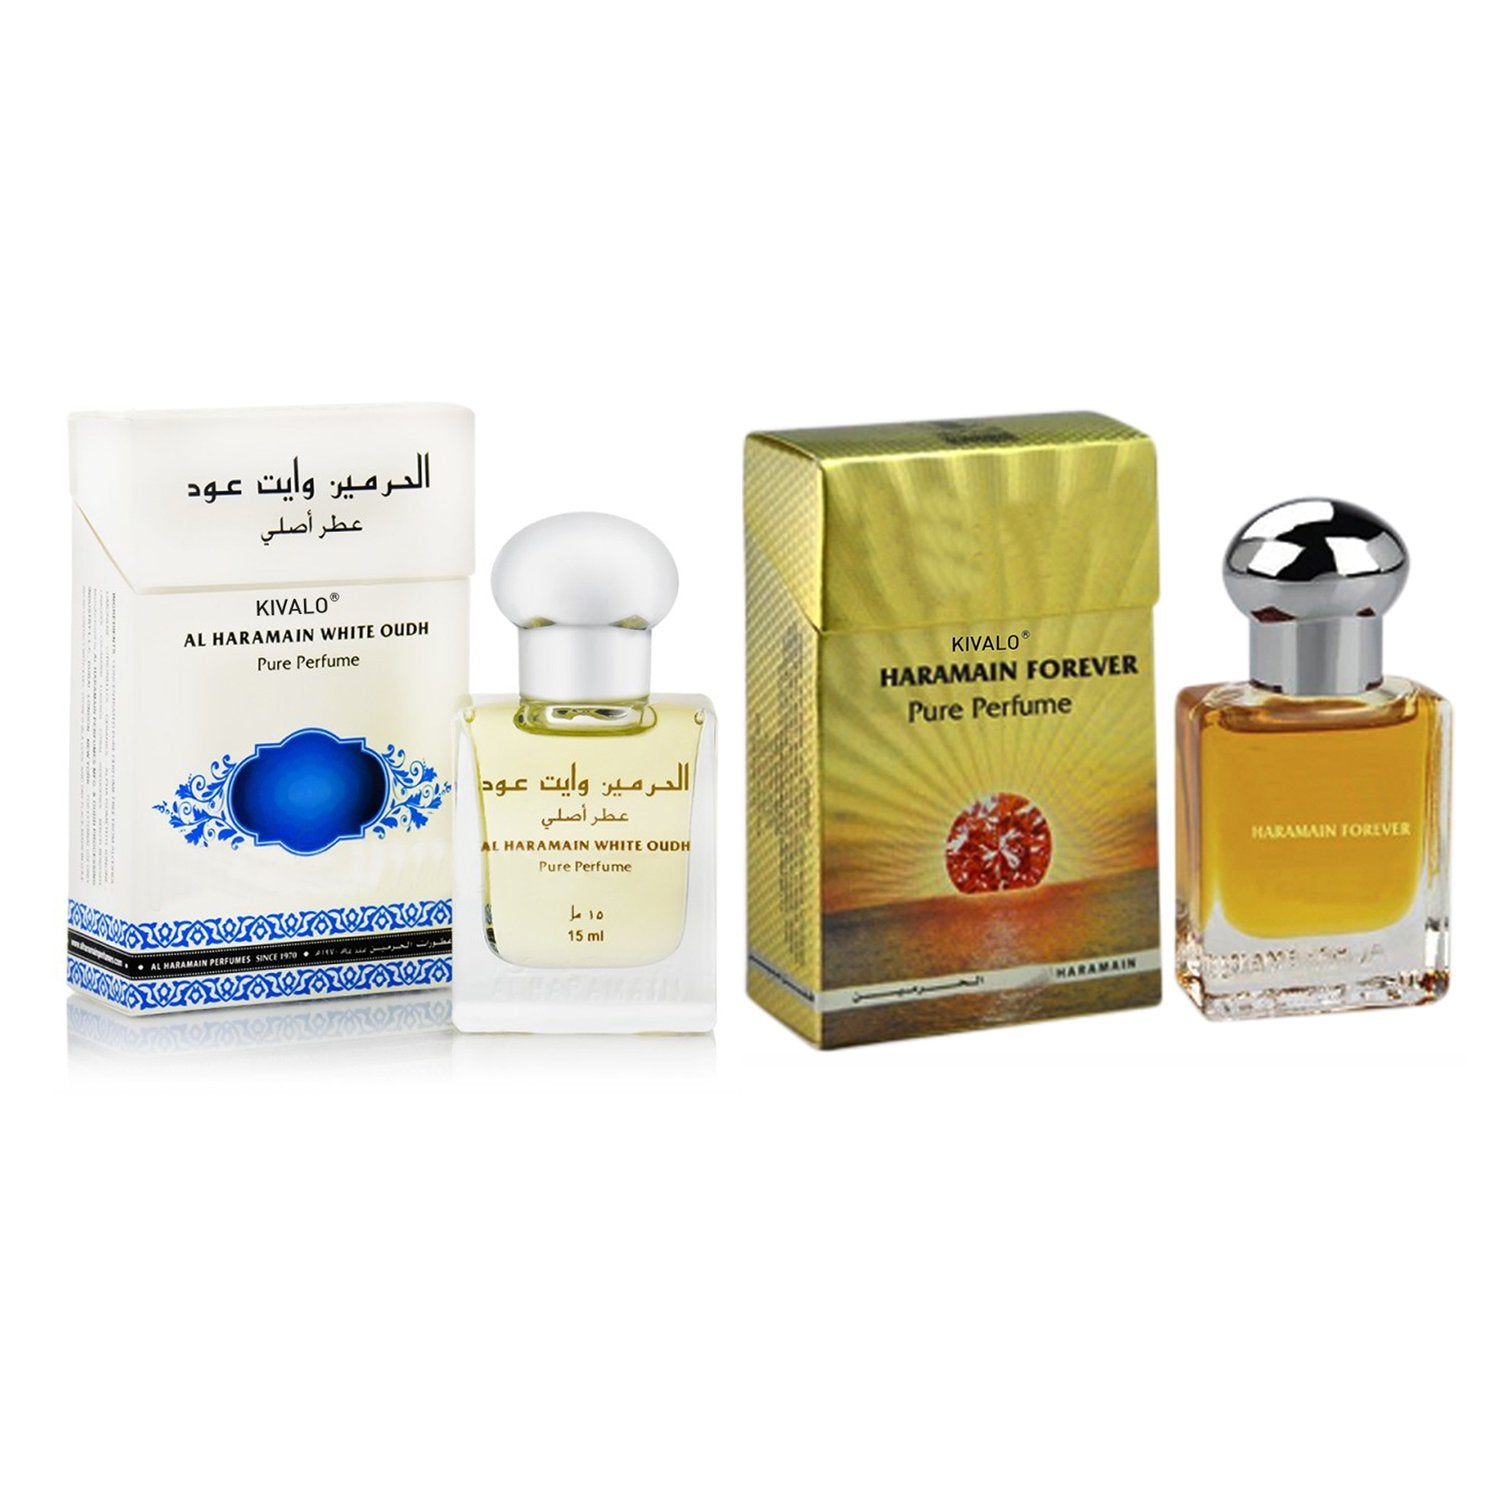 Al Haramain White Oudh & Forever Roll on Attar Pack of 2  - 2 x 15 ml